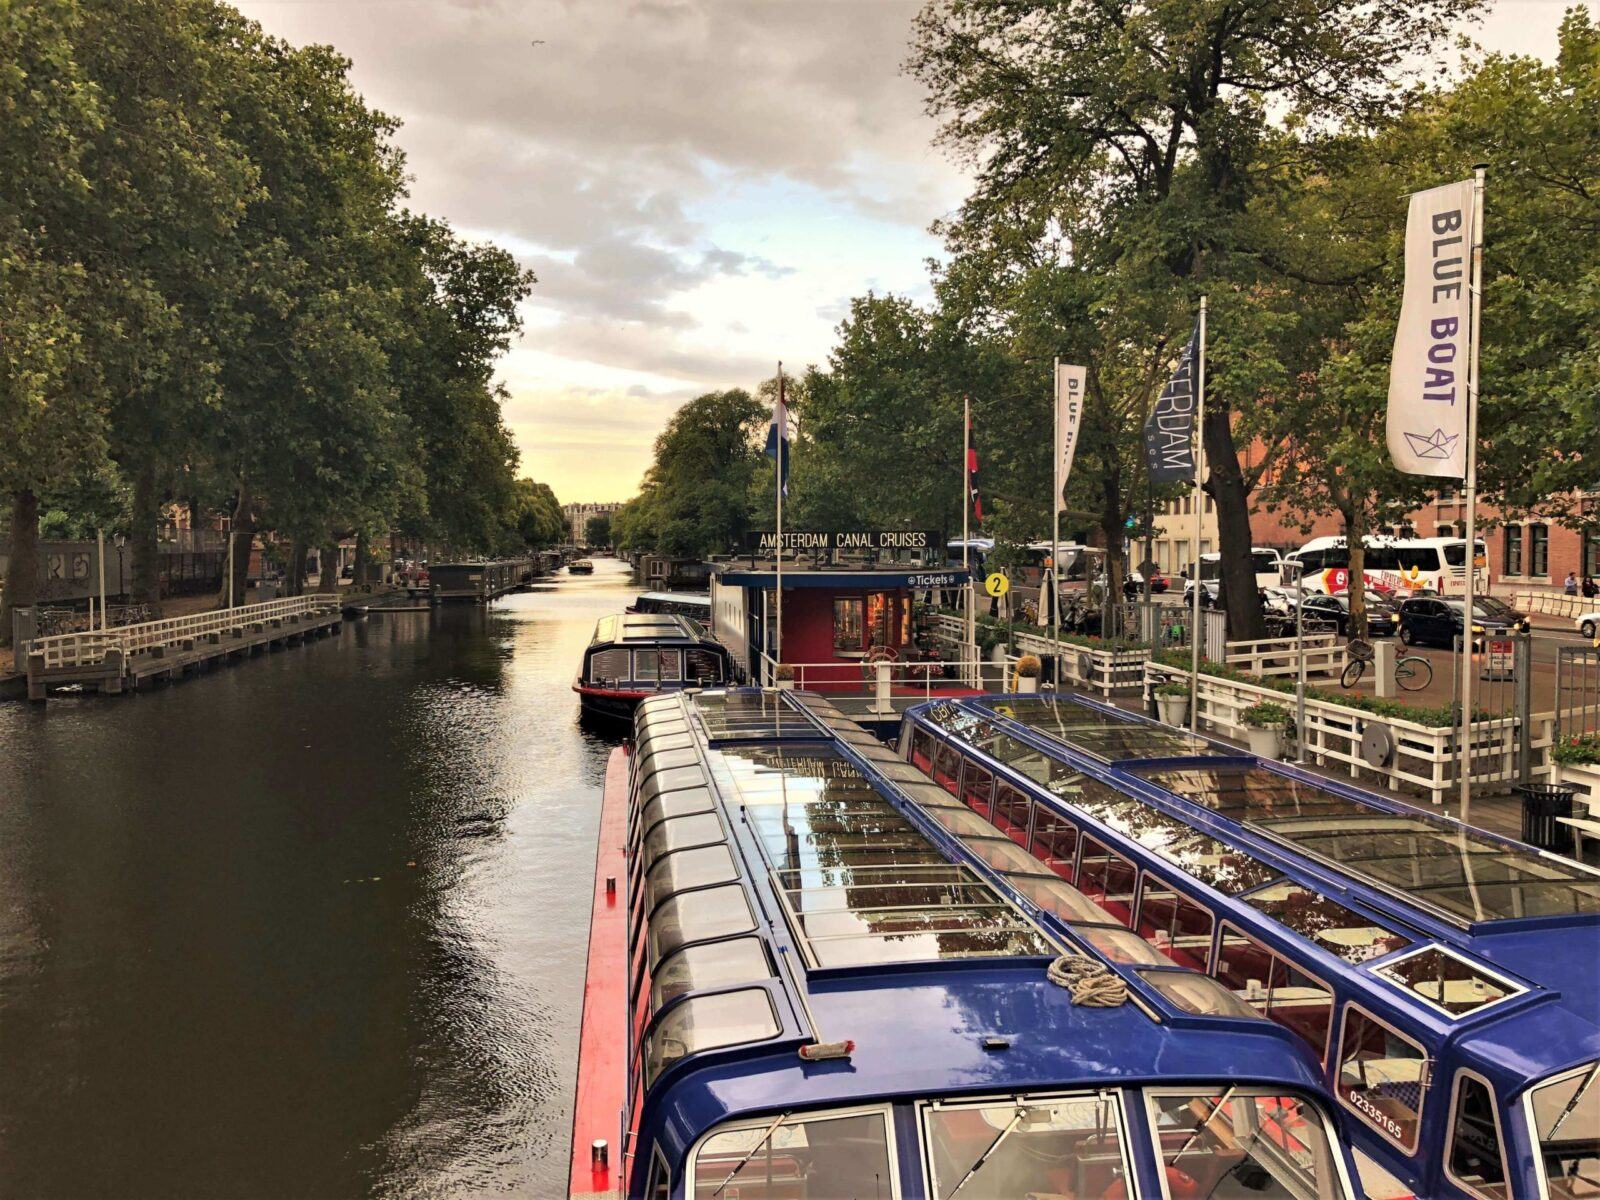 Boat trip on a canal in Amsterdam